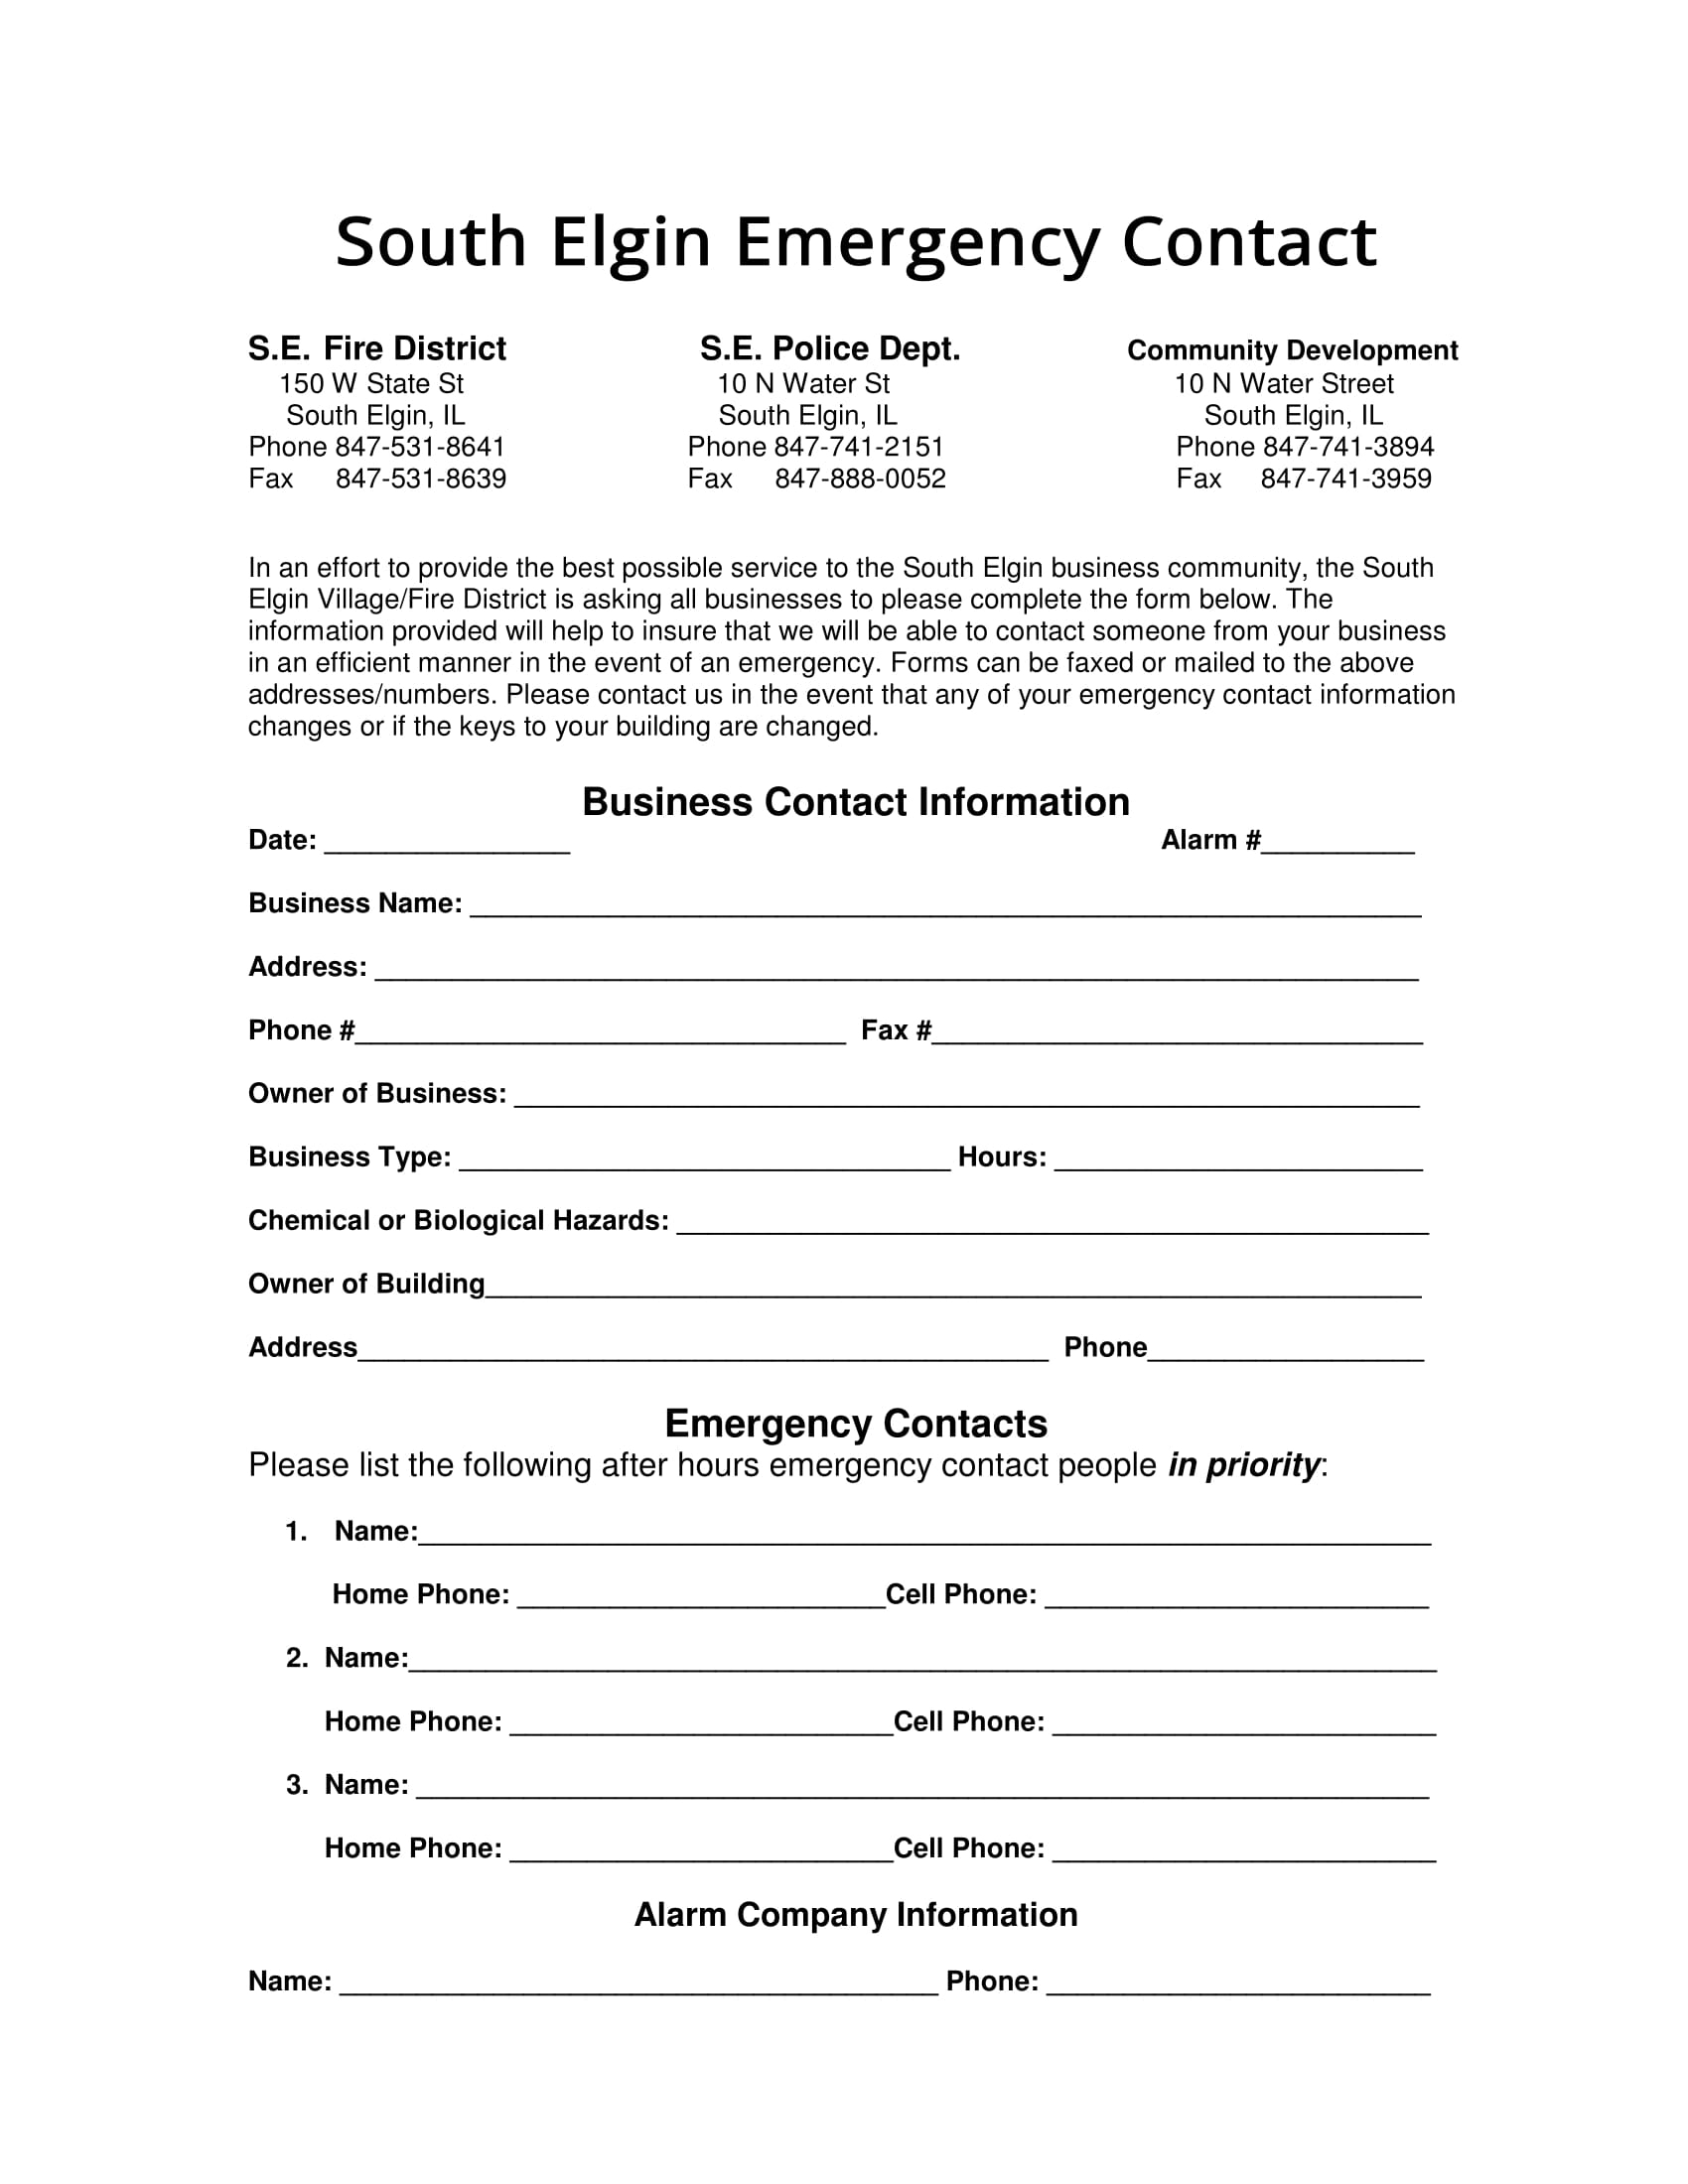 business contact information form 1